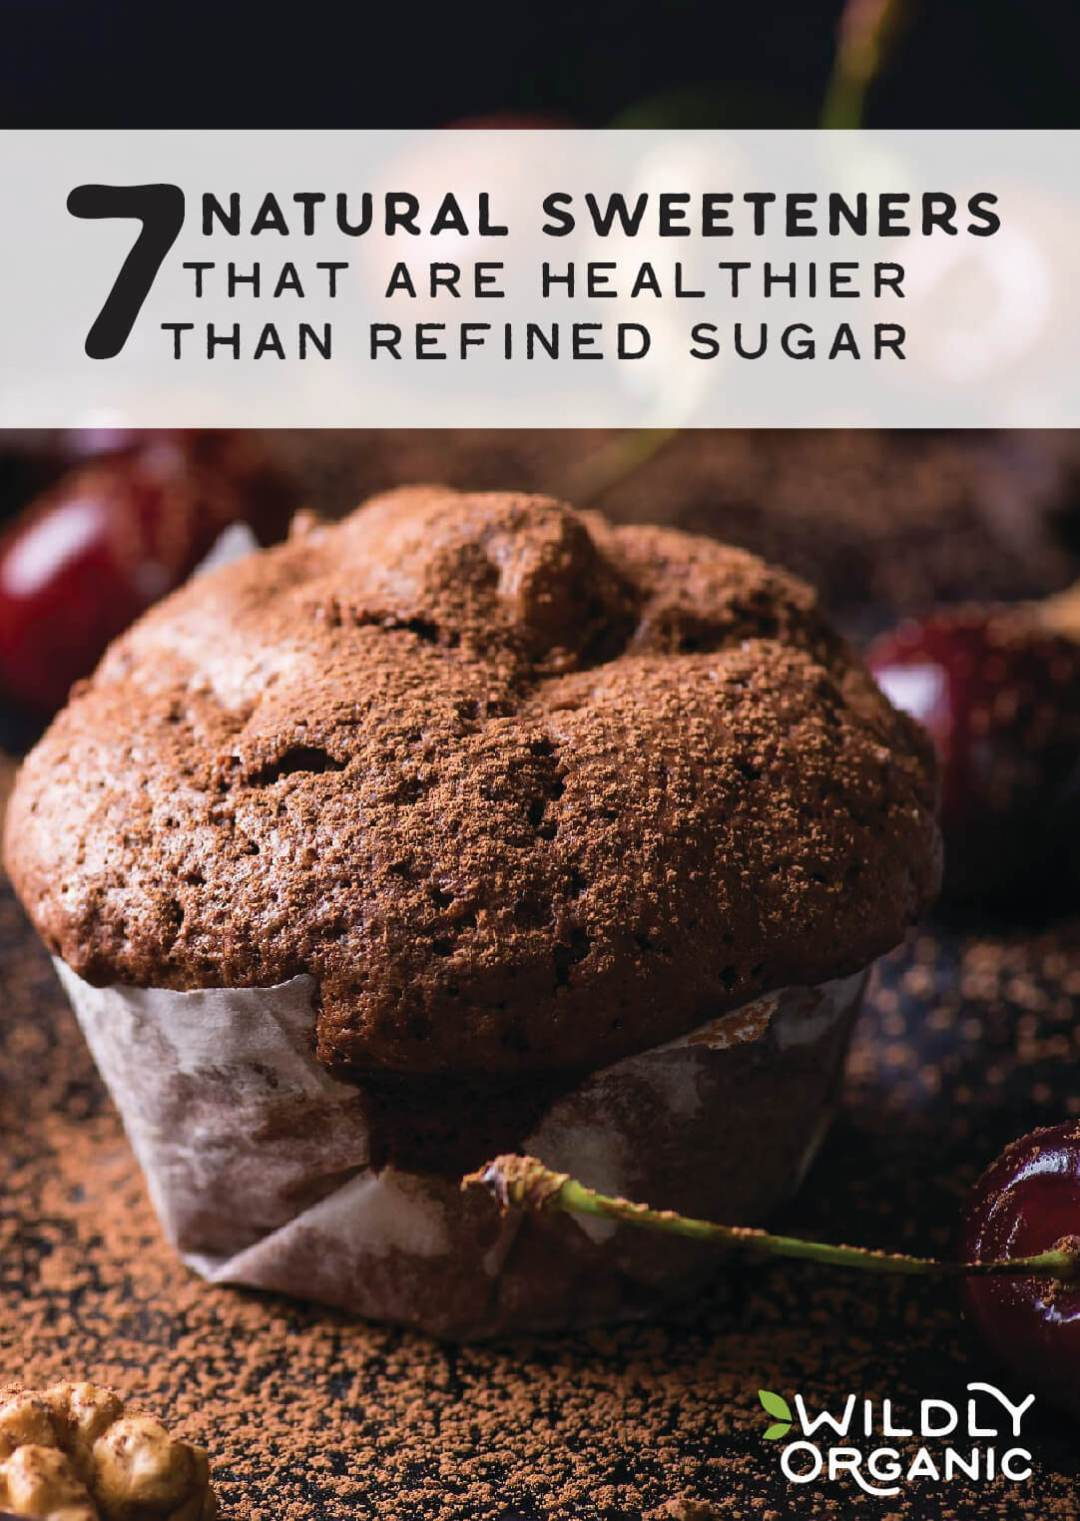 7 Natural Sweeteners That Are Healthier Than Refined Sugar